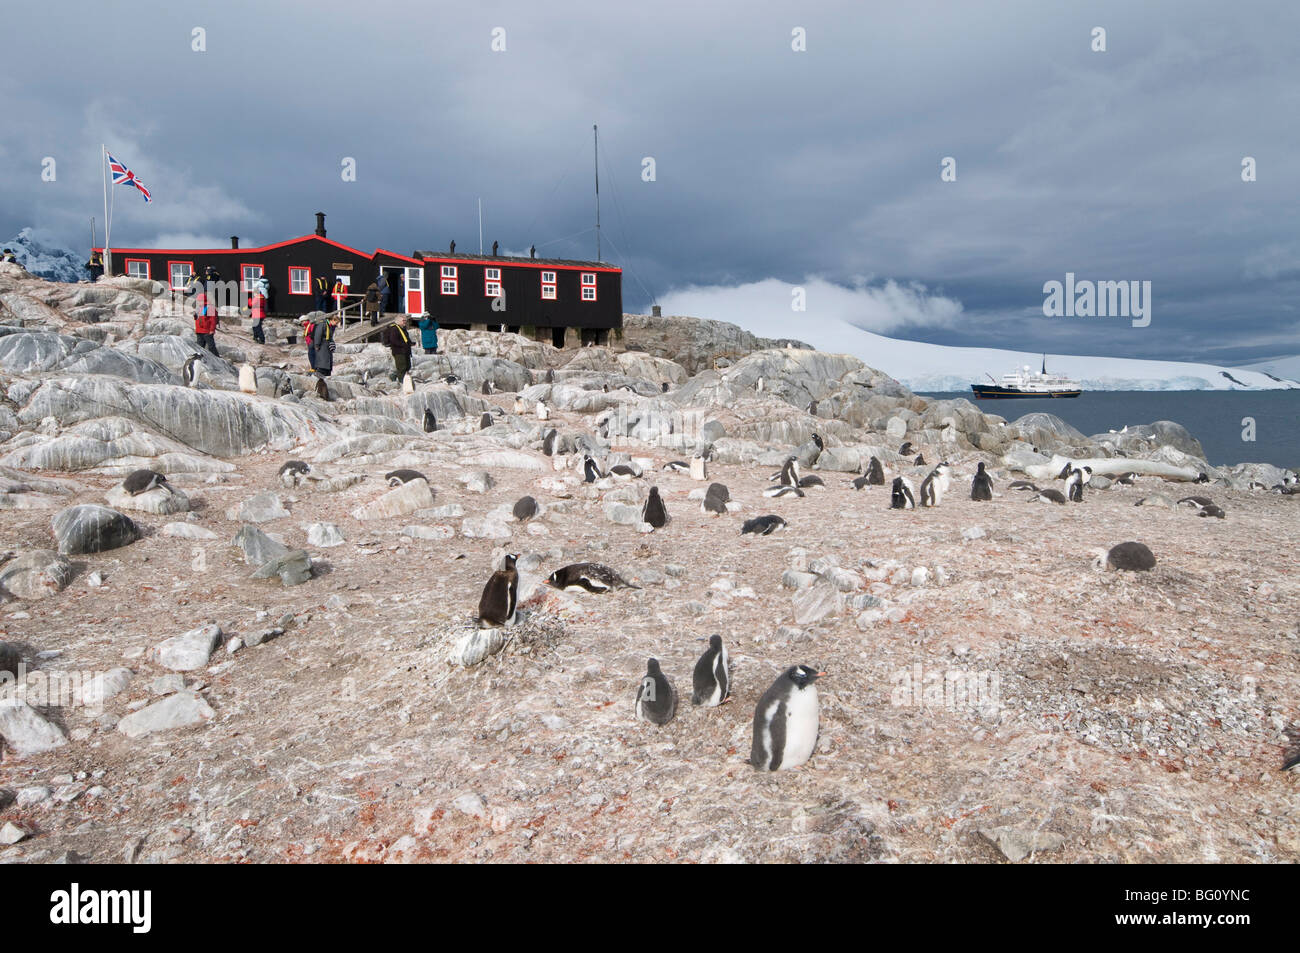 British Base and Post Office, Port Lockroy, Antarctic Peninsula, Antarctica, Polar Regions Stock Photo